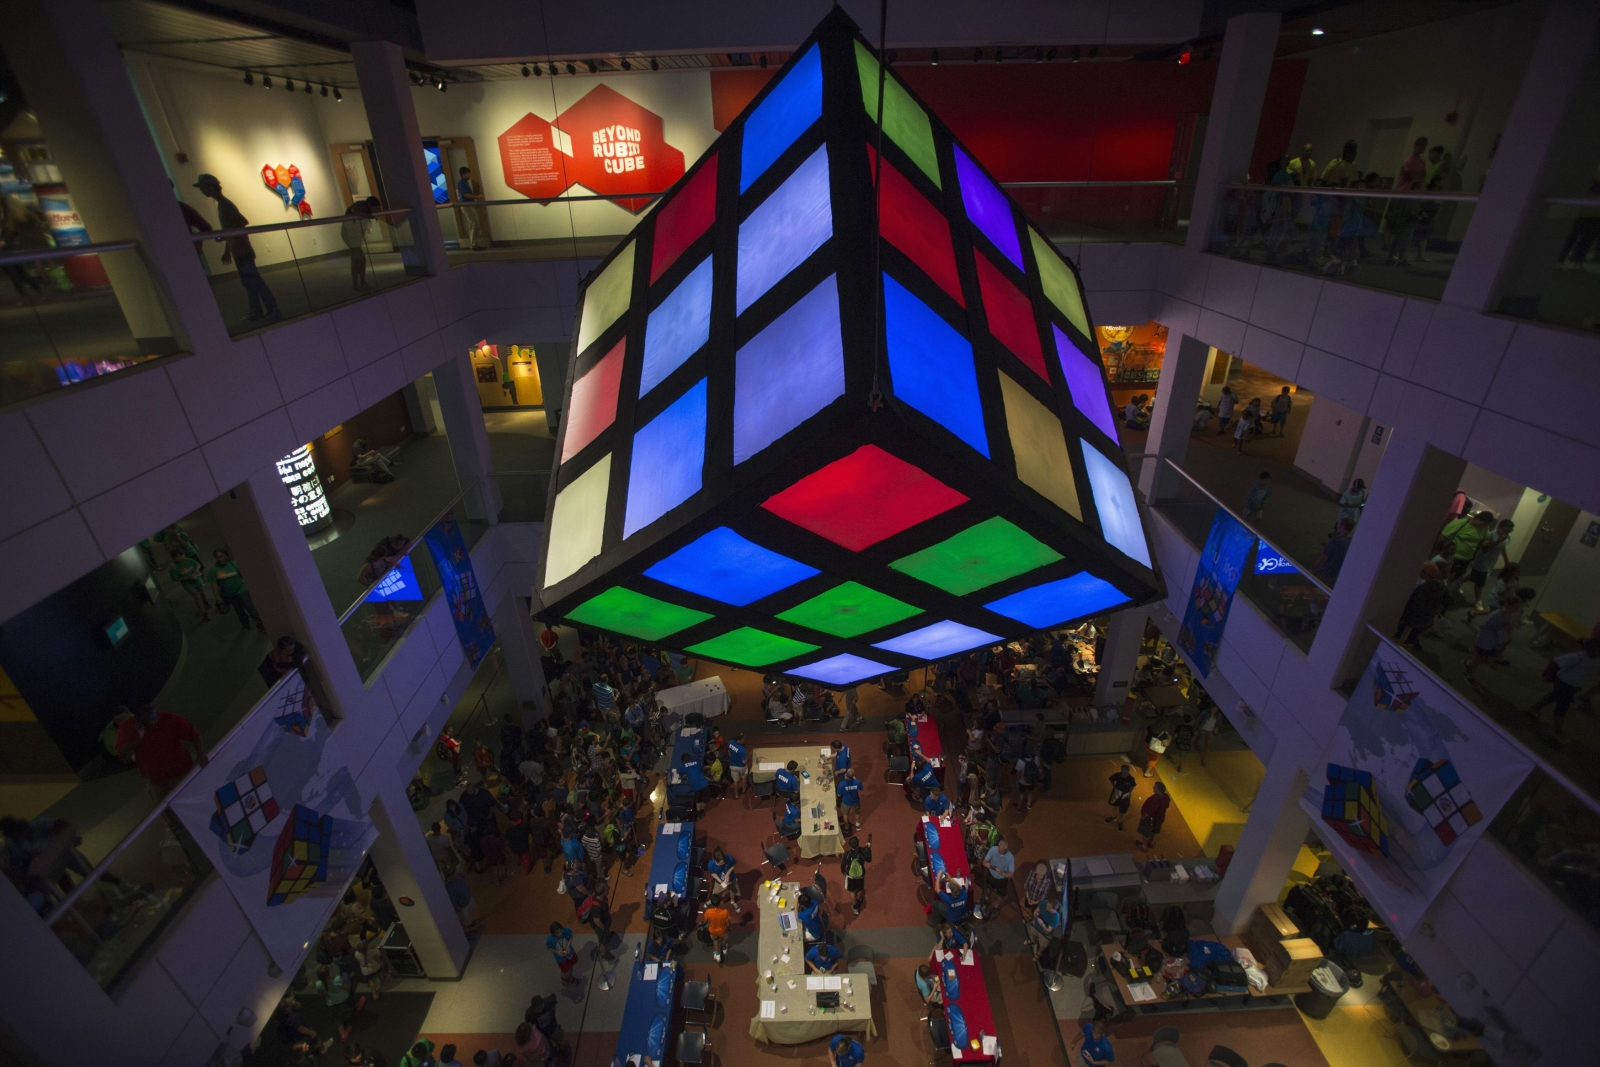 Rubik's Cube looks down over the crowd of participants